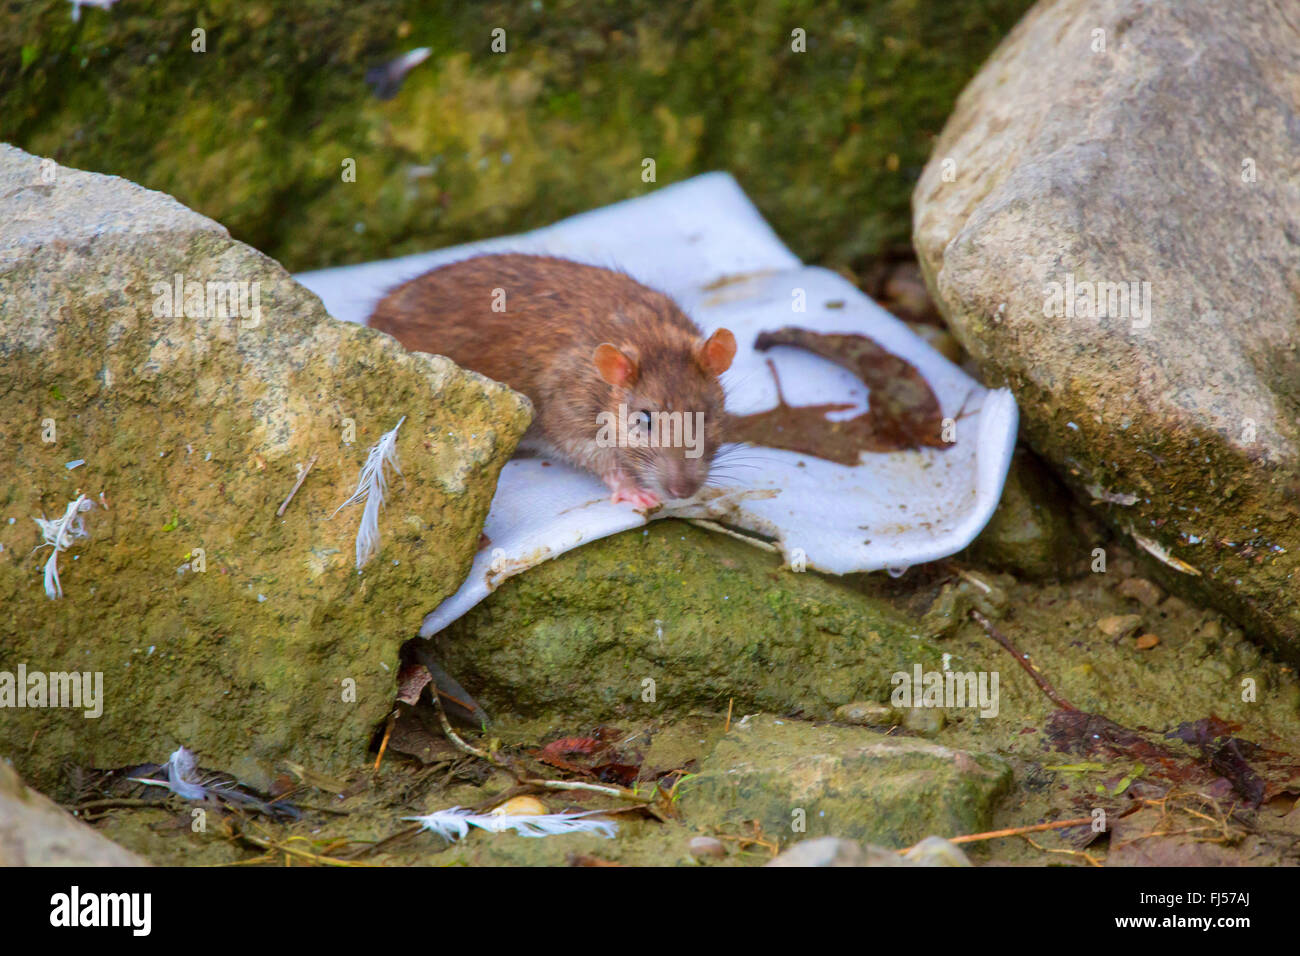 Brown rat, Common brown rat, Norway rat, Common rat (Rattus norvegicus), with only one eye searching food, Germany, - Stock Image